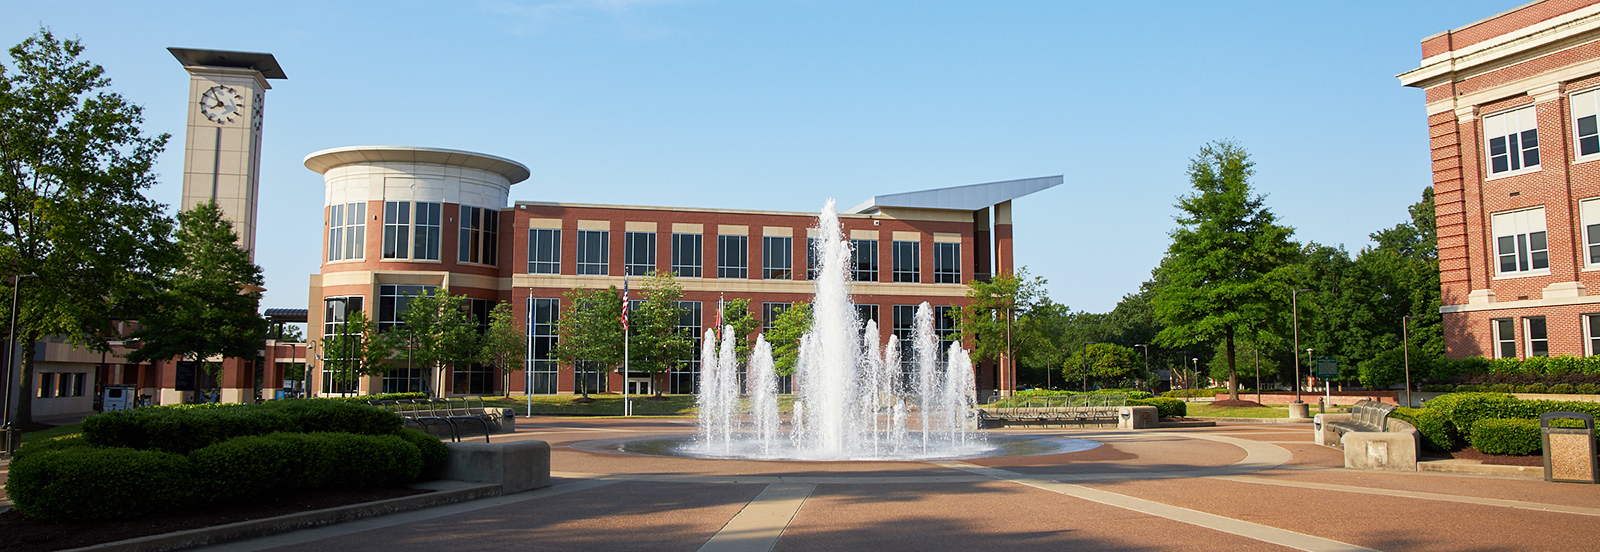 student plaza water fountain